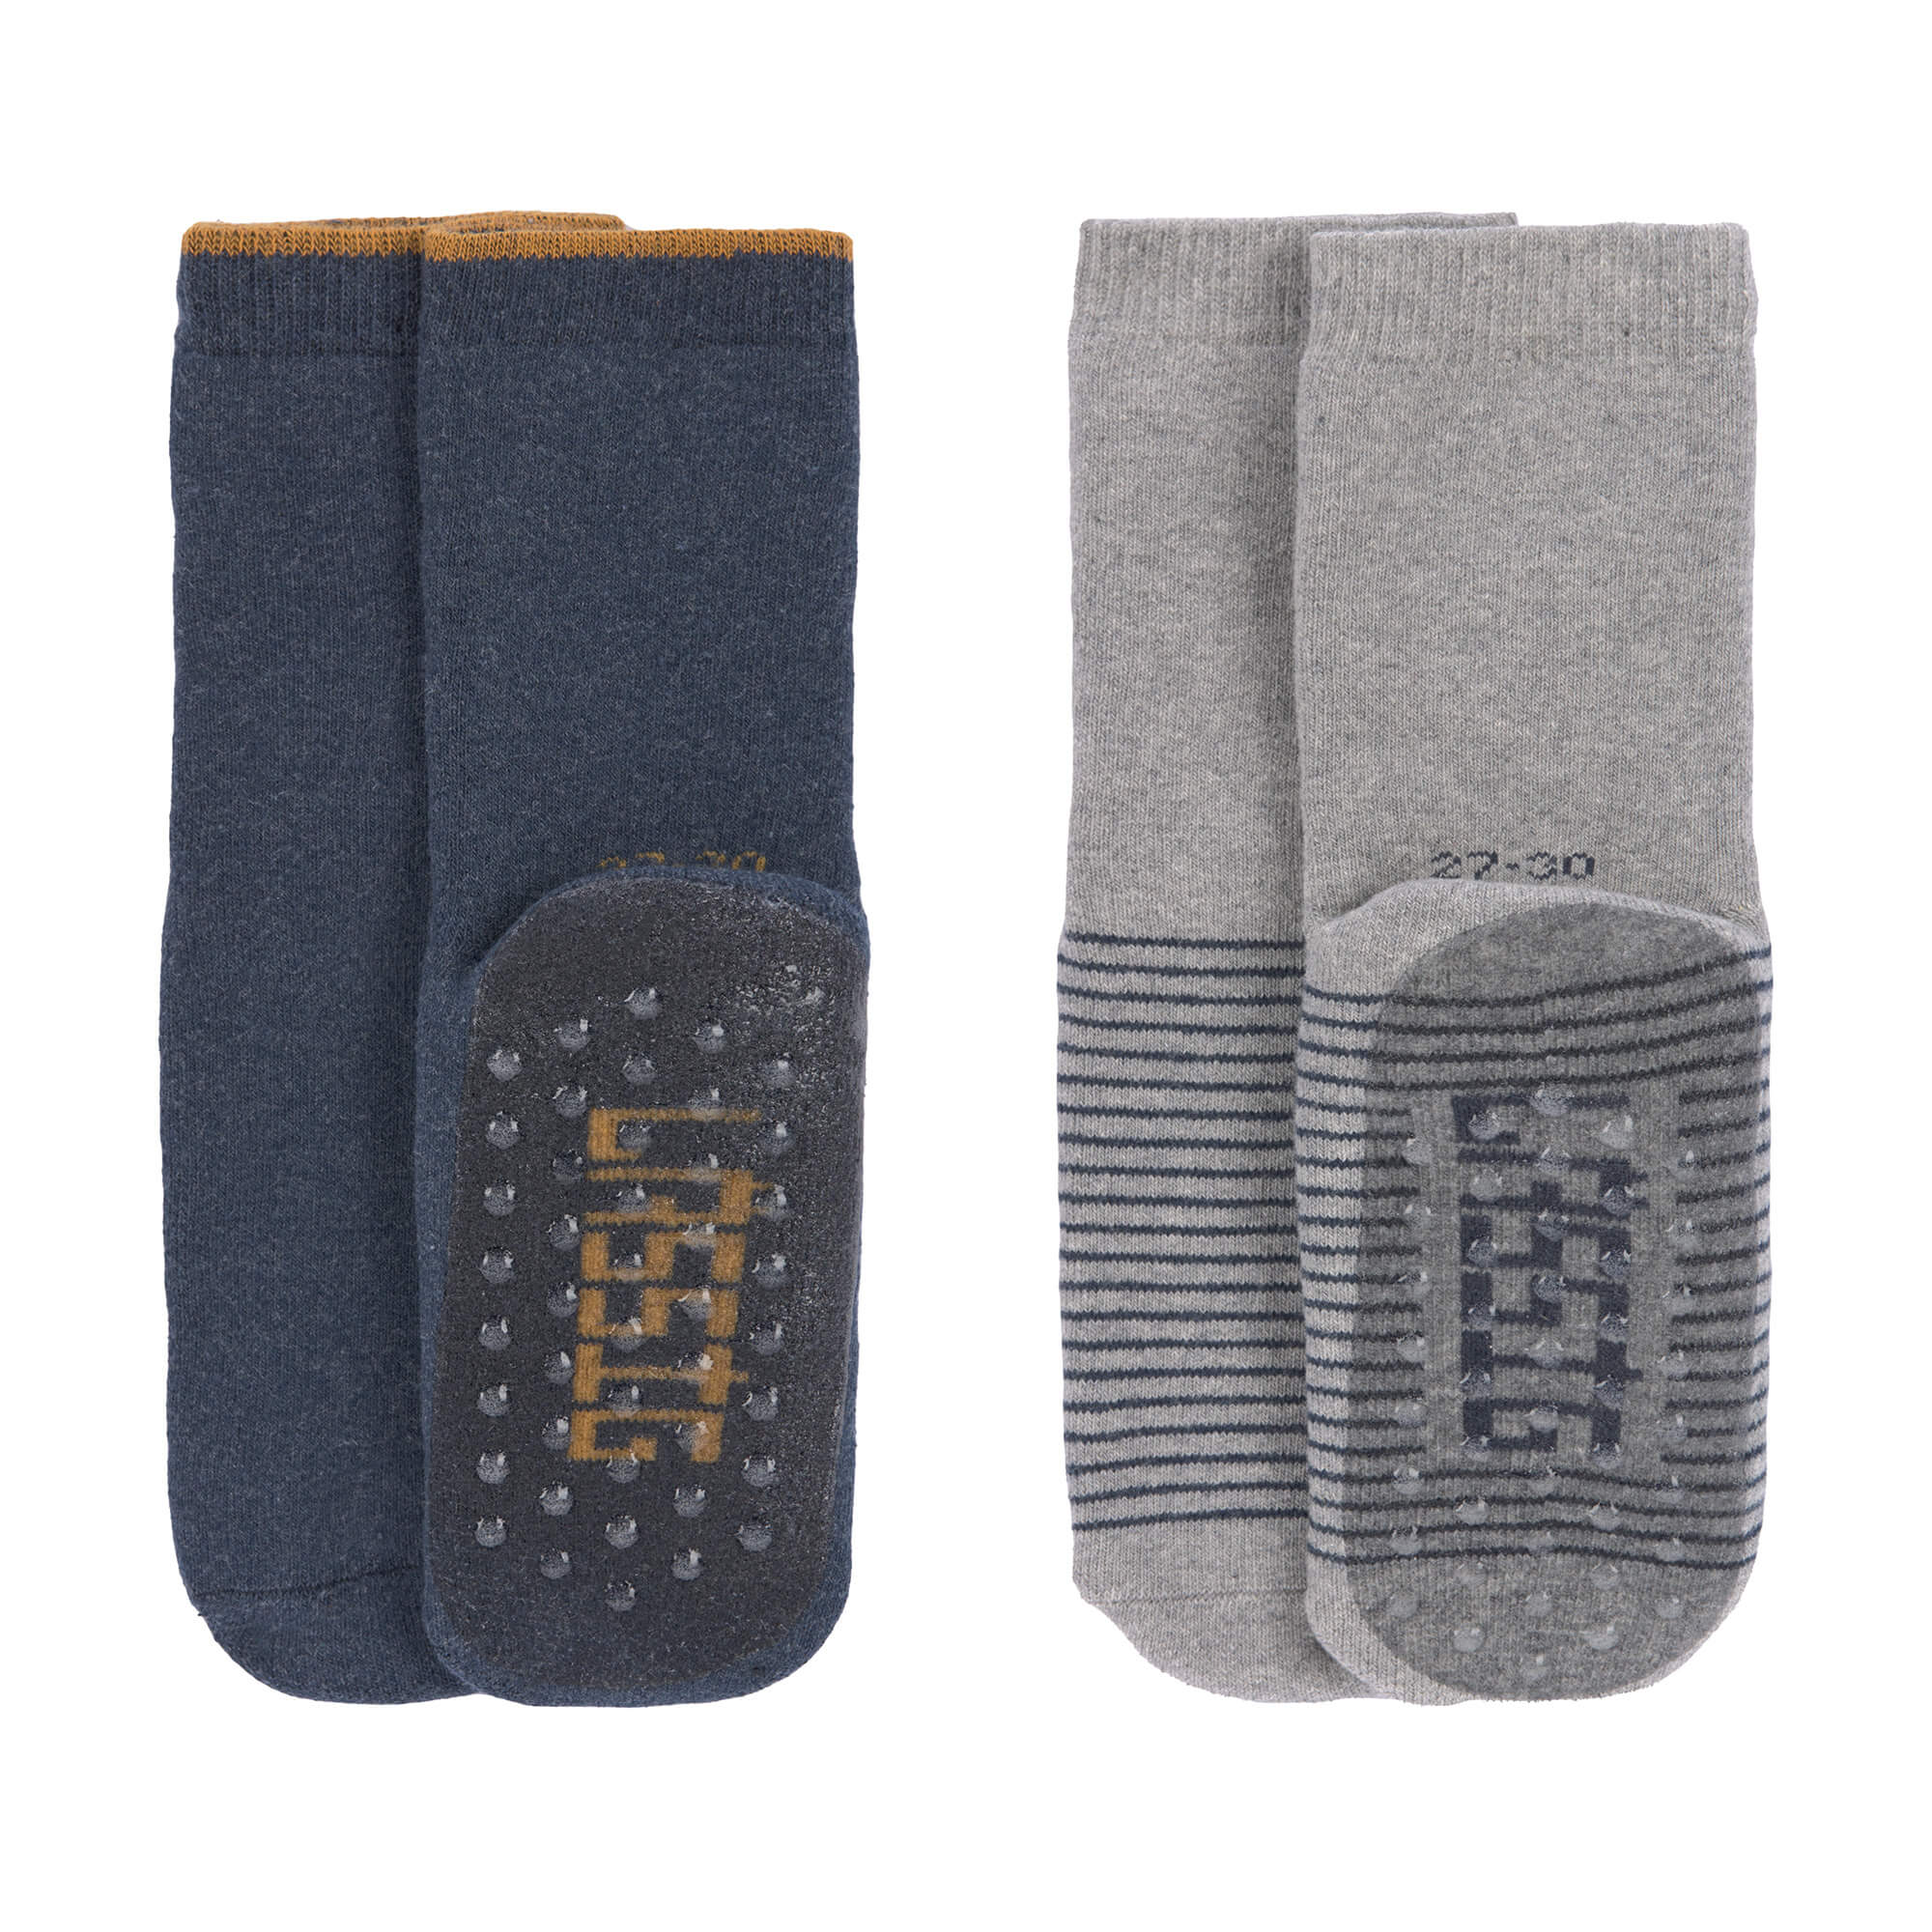 Kinder Antirutsch-Socken (2er-Pack) - Größe: 19-22 - Anti-Slip Socks, Blue Grey - Lässig